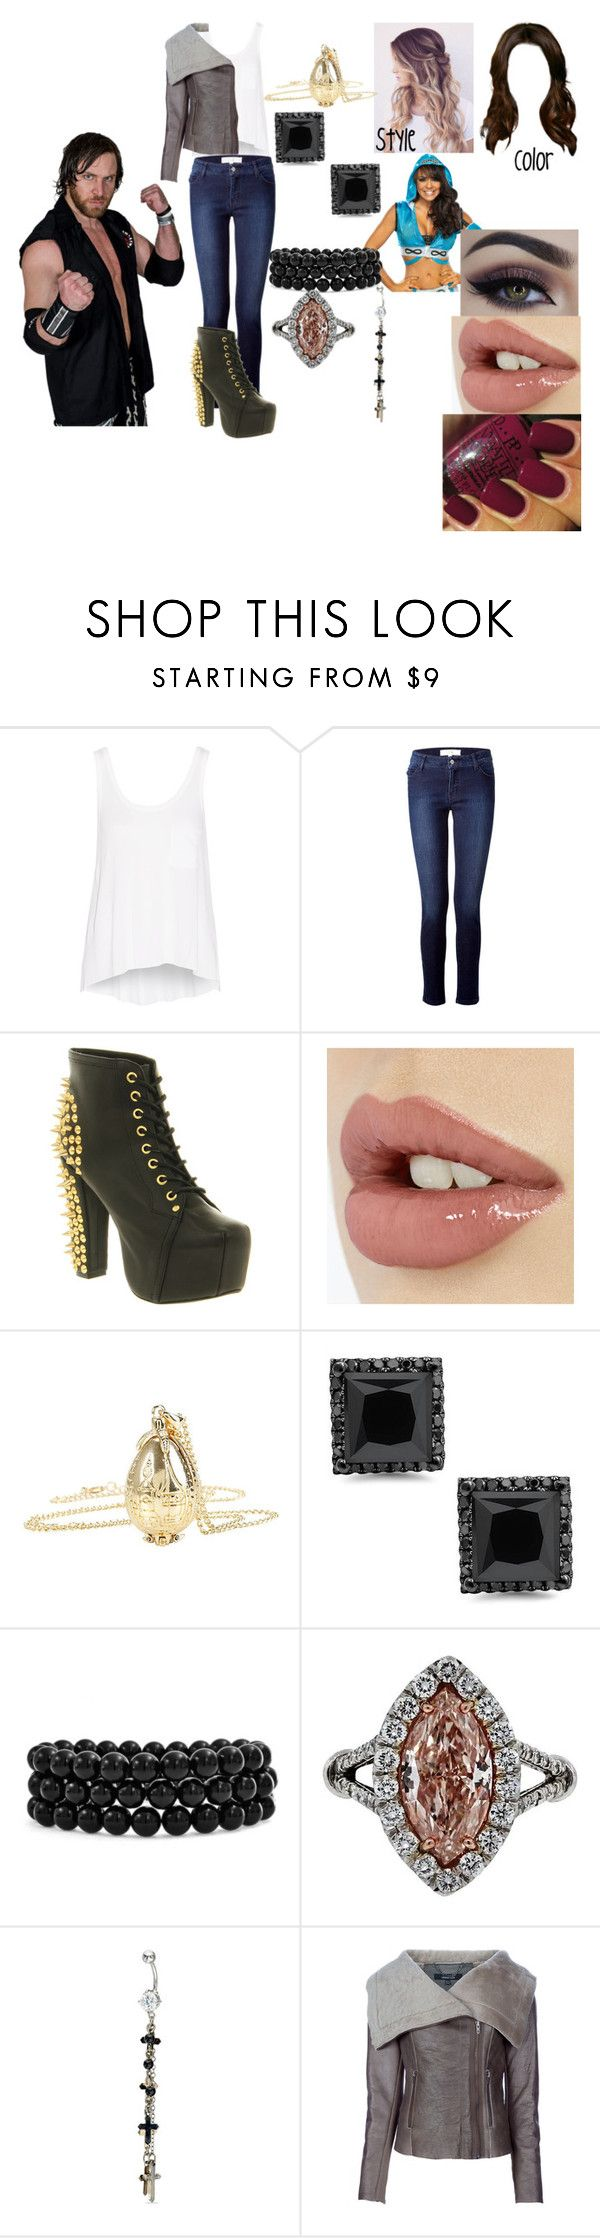 """""""The Viper Sister (Chris Sabin Love Story)"""" by anaeve ❤ liked on Polyvore featuring rag & bone, Vanessa Bruno Athé, Jeffrey Campbell, Bling Jewelry and MuuBaa"""